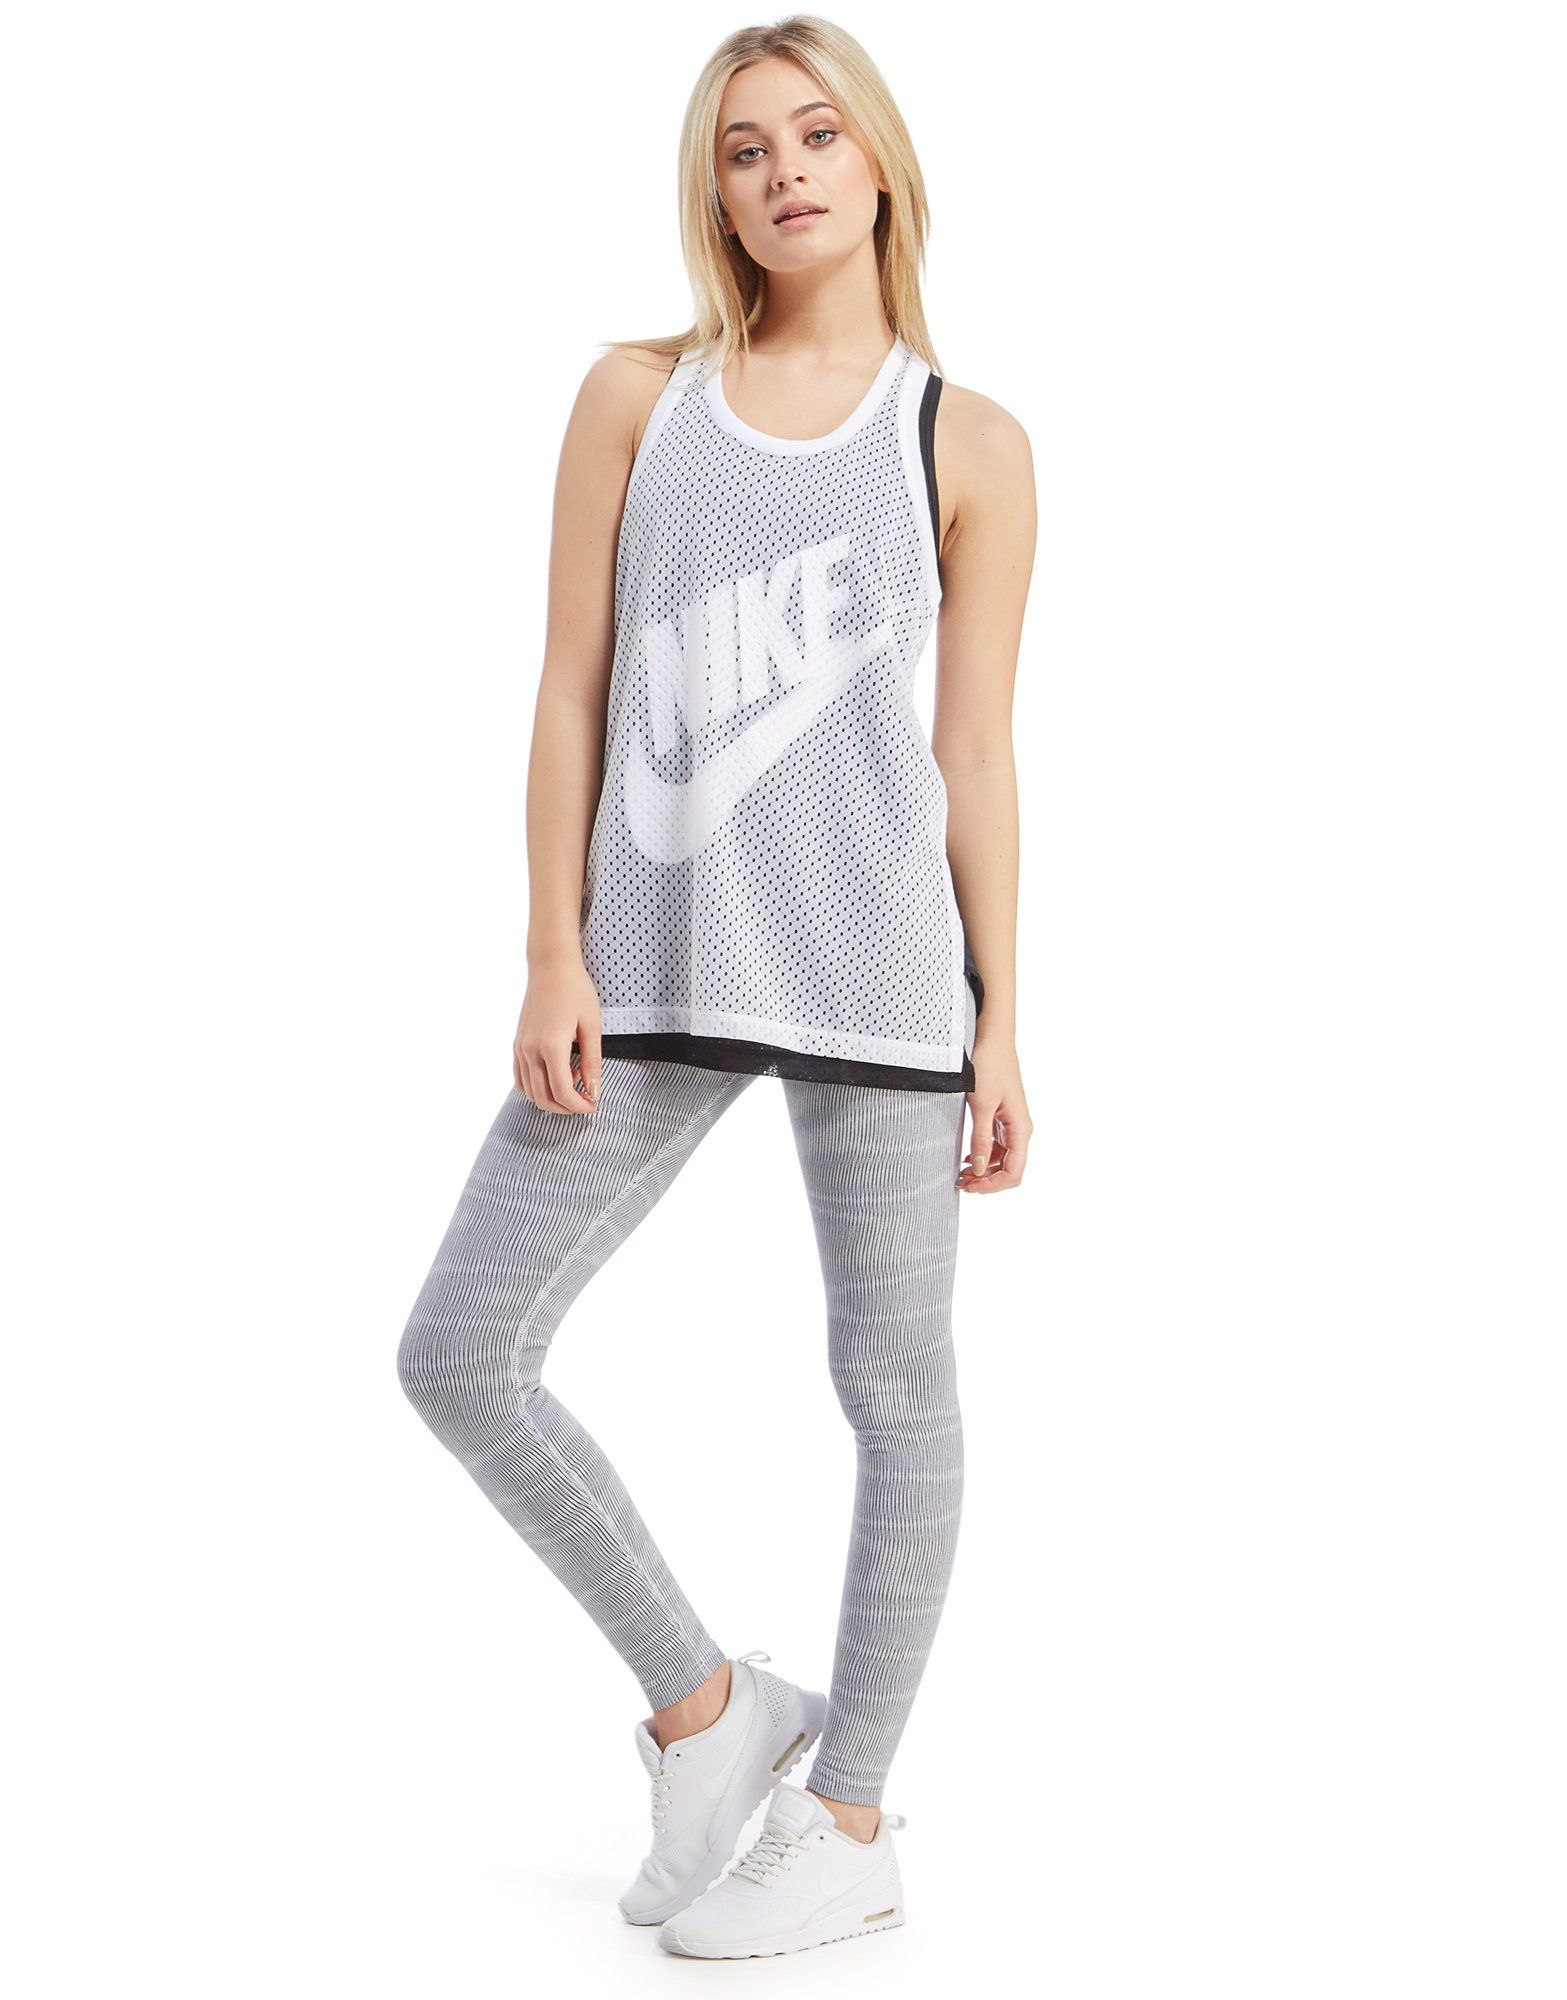 Nike Leg-A-See Printed Leggings